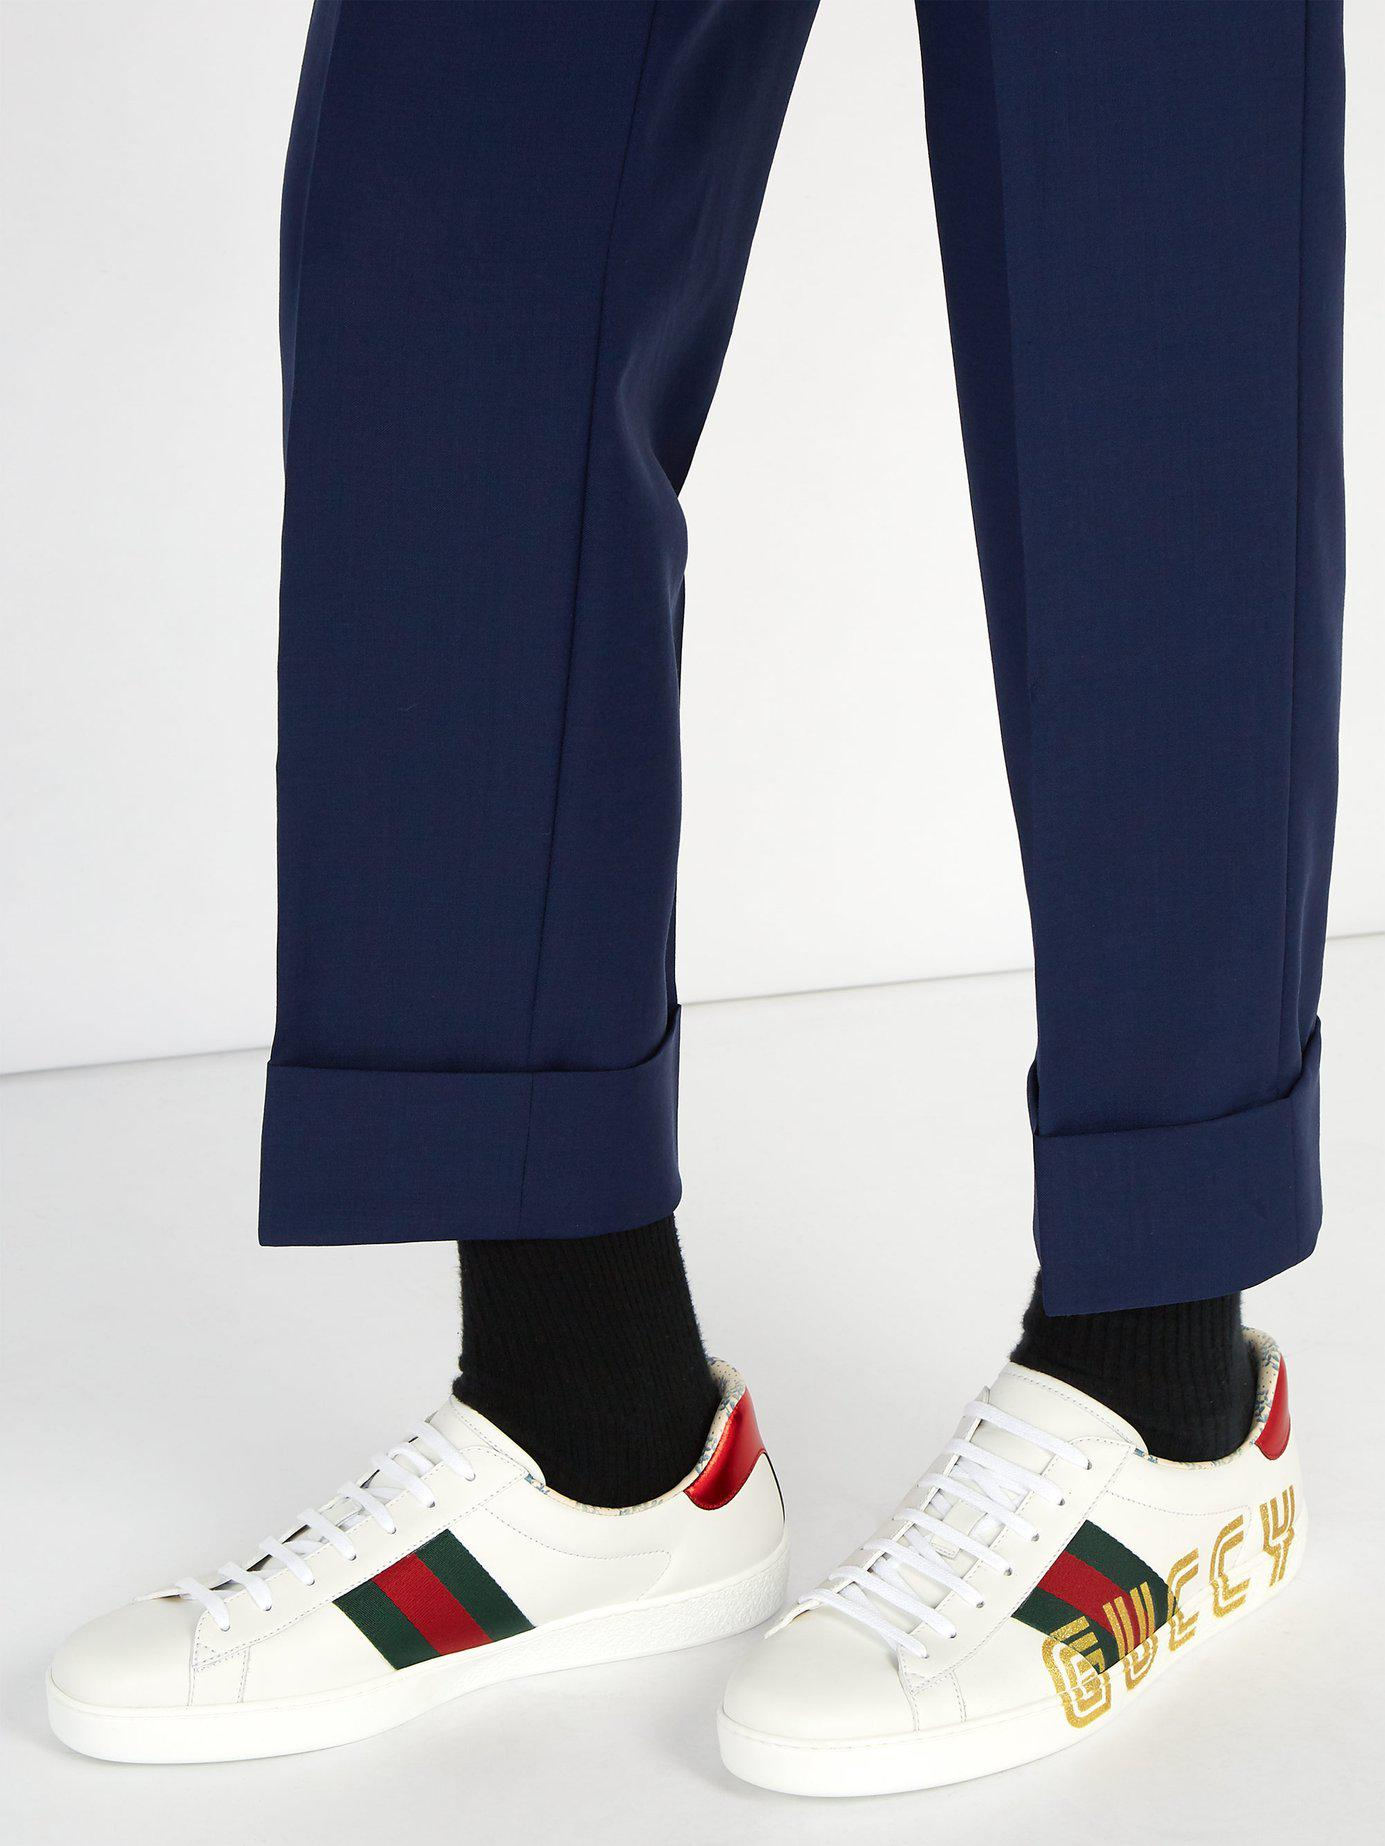 ced37379a36 Gucci New Ace Glitter Embellished Leather Trainers for Men - Lyst